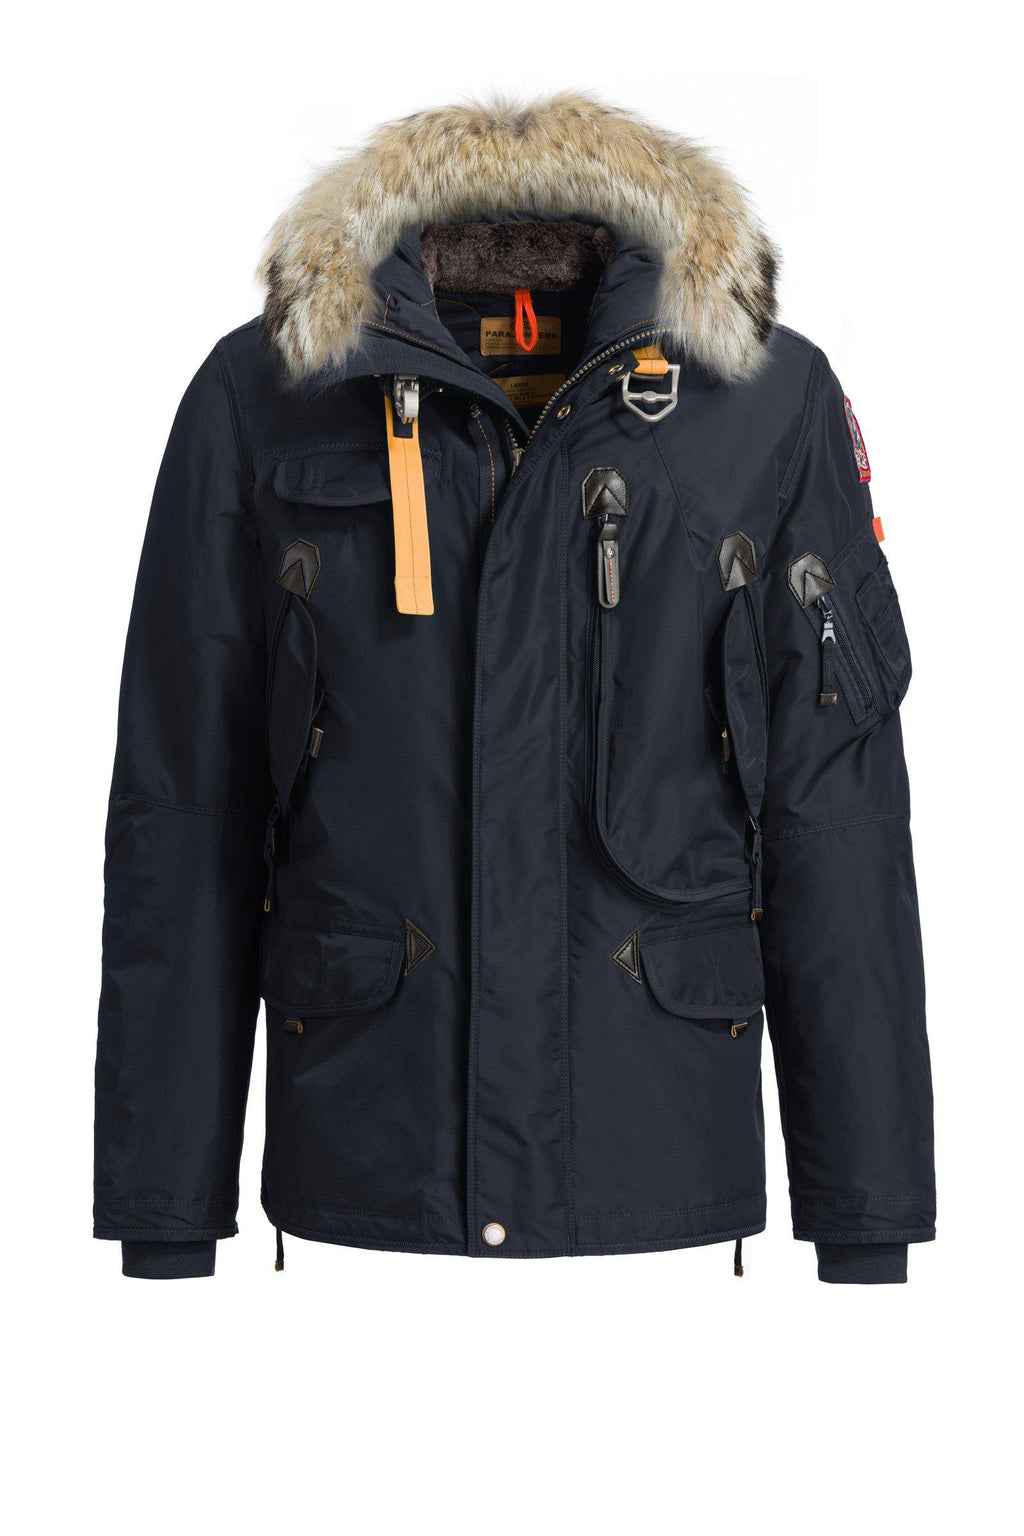 Parajumpers Right Hand Jacket-Jackets-Classic fashion CF13-M-Navy-Classic fashion CF13